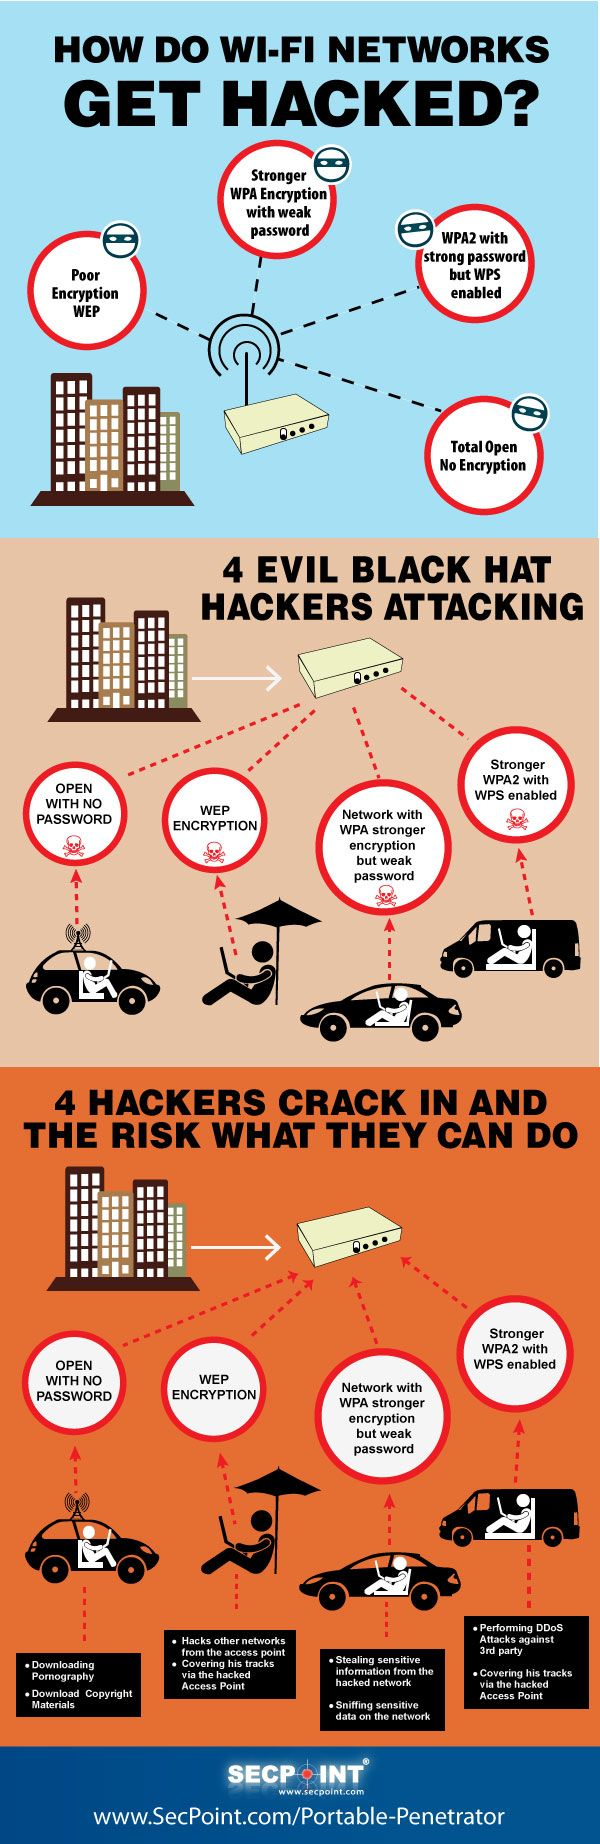 Learn how attackers recover wifi passwords in this illustrated infographic. Protect yourself from hackers!